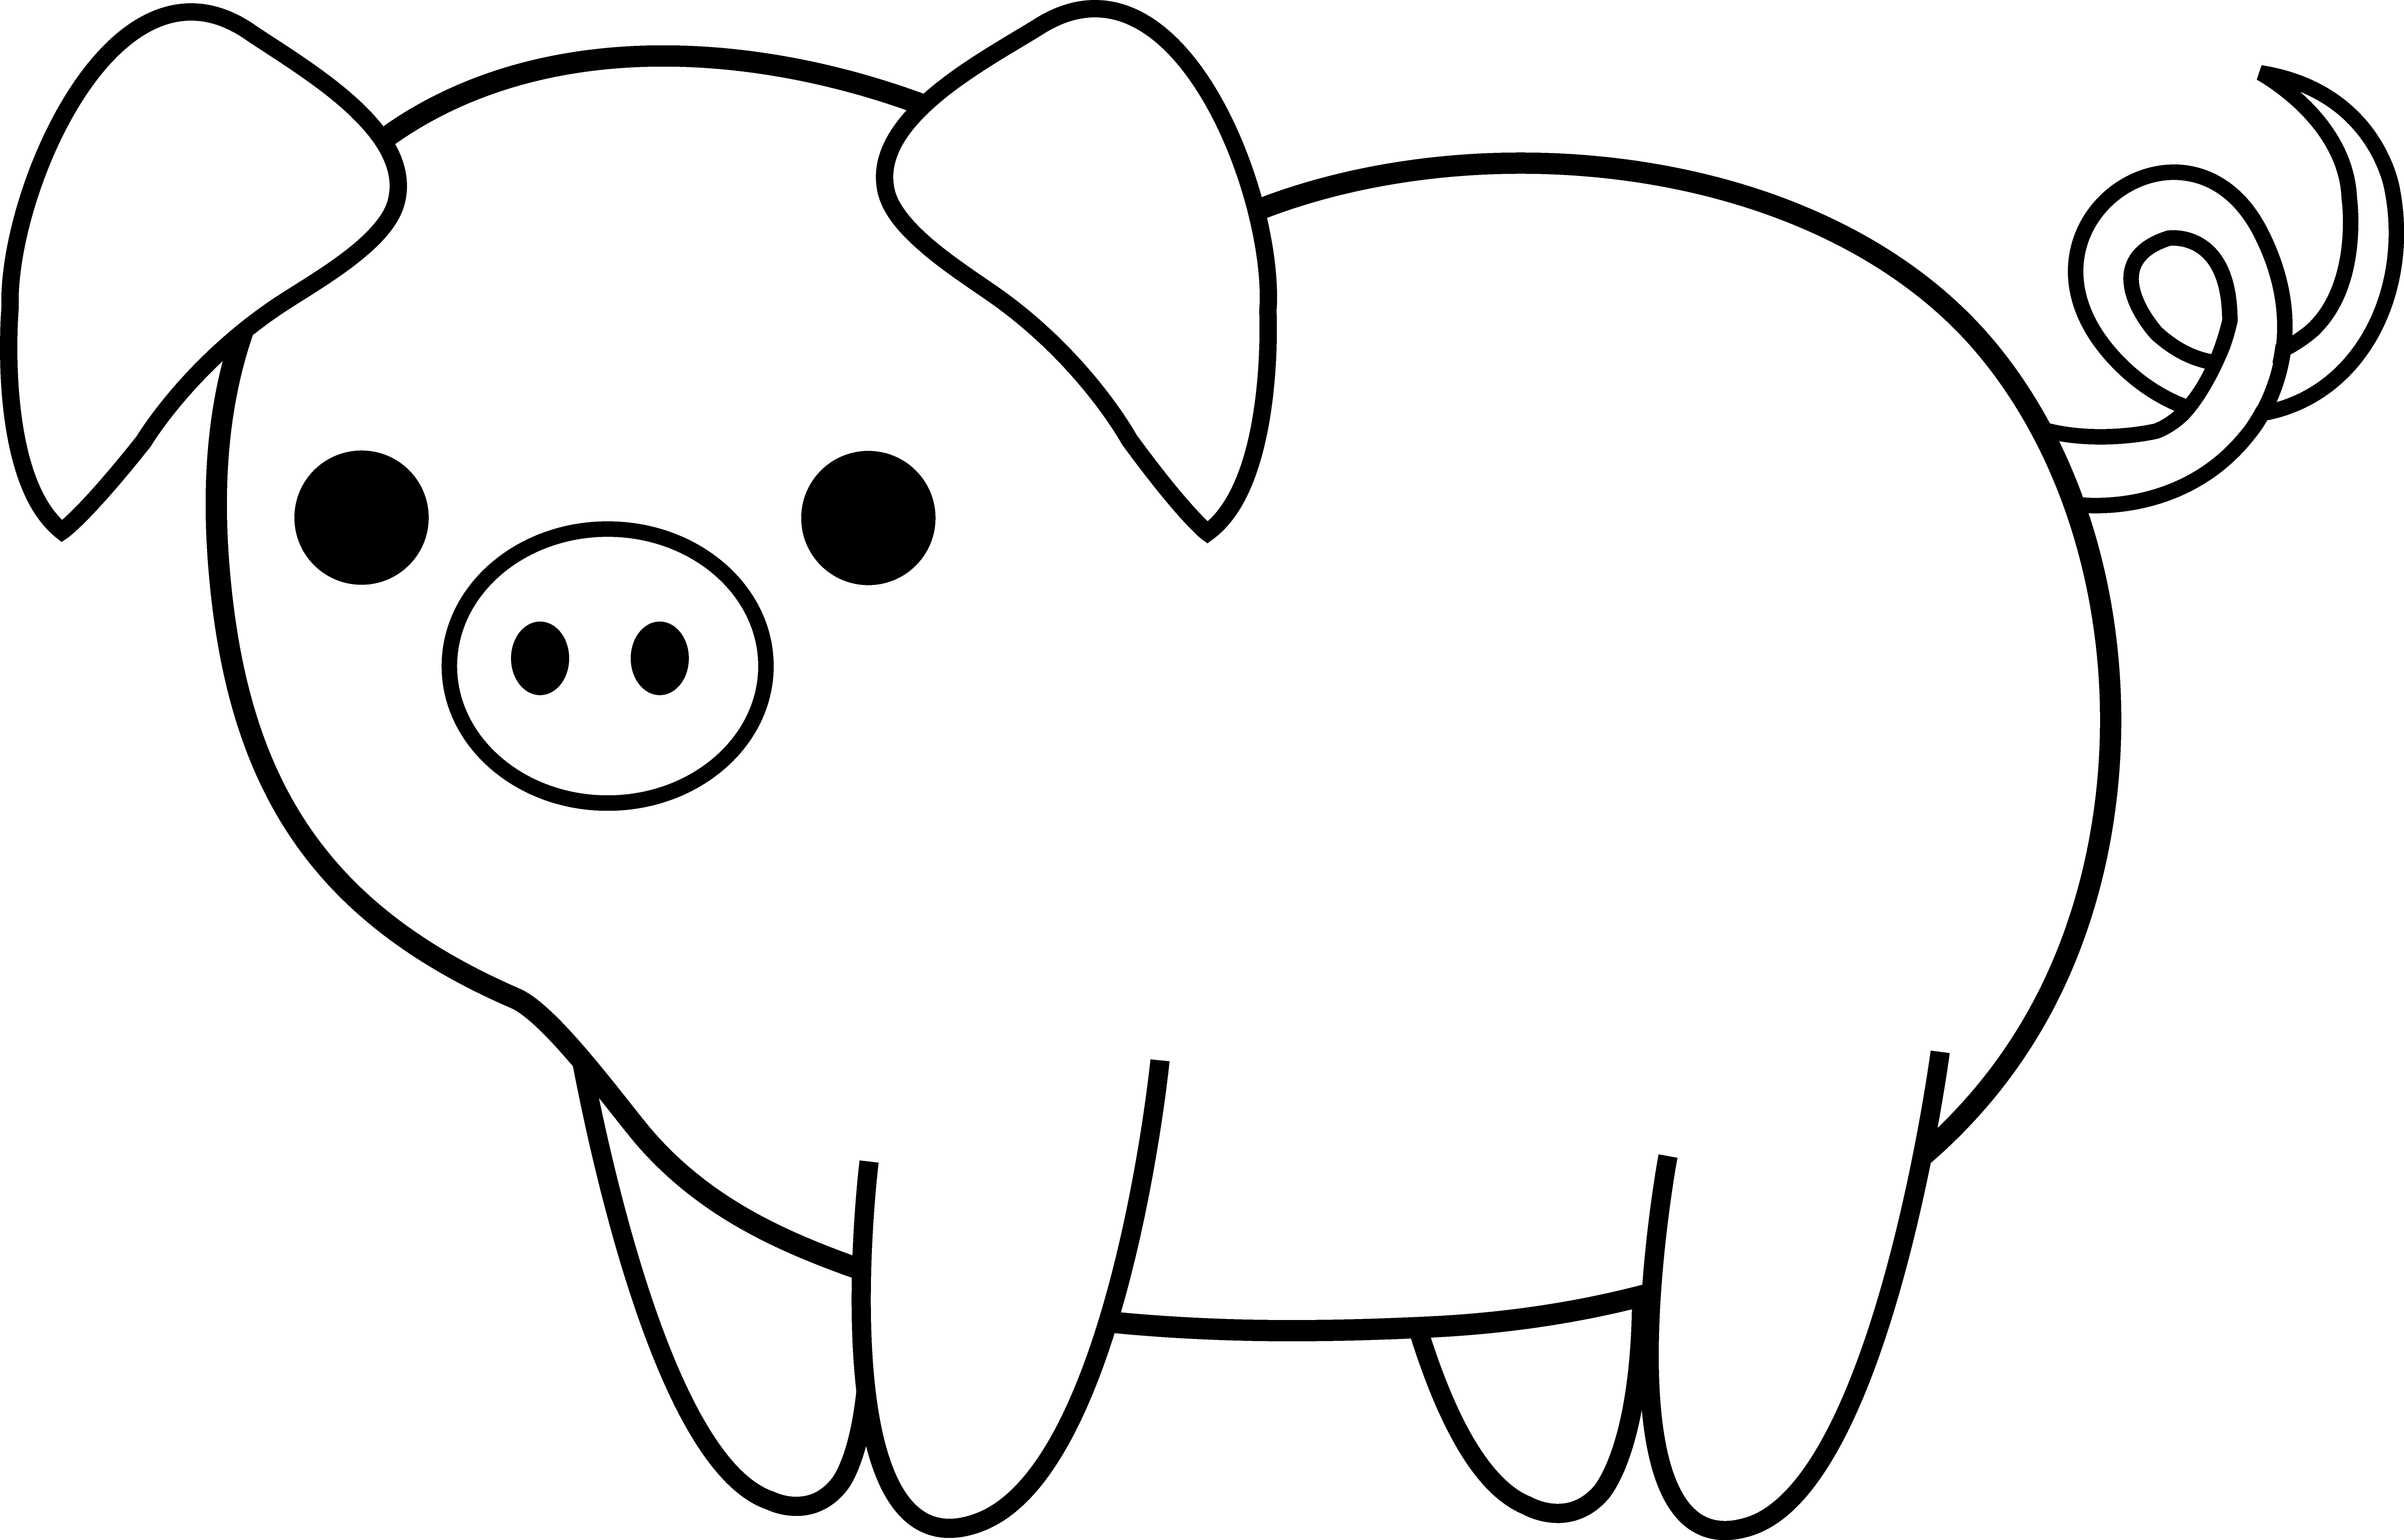 5189x3325 Cute Black And White Pig Clip Art Pig Drawing, Pig Crafts